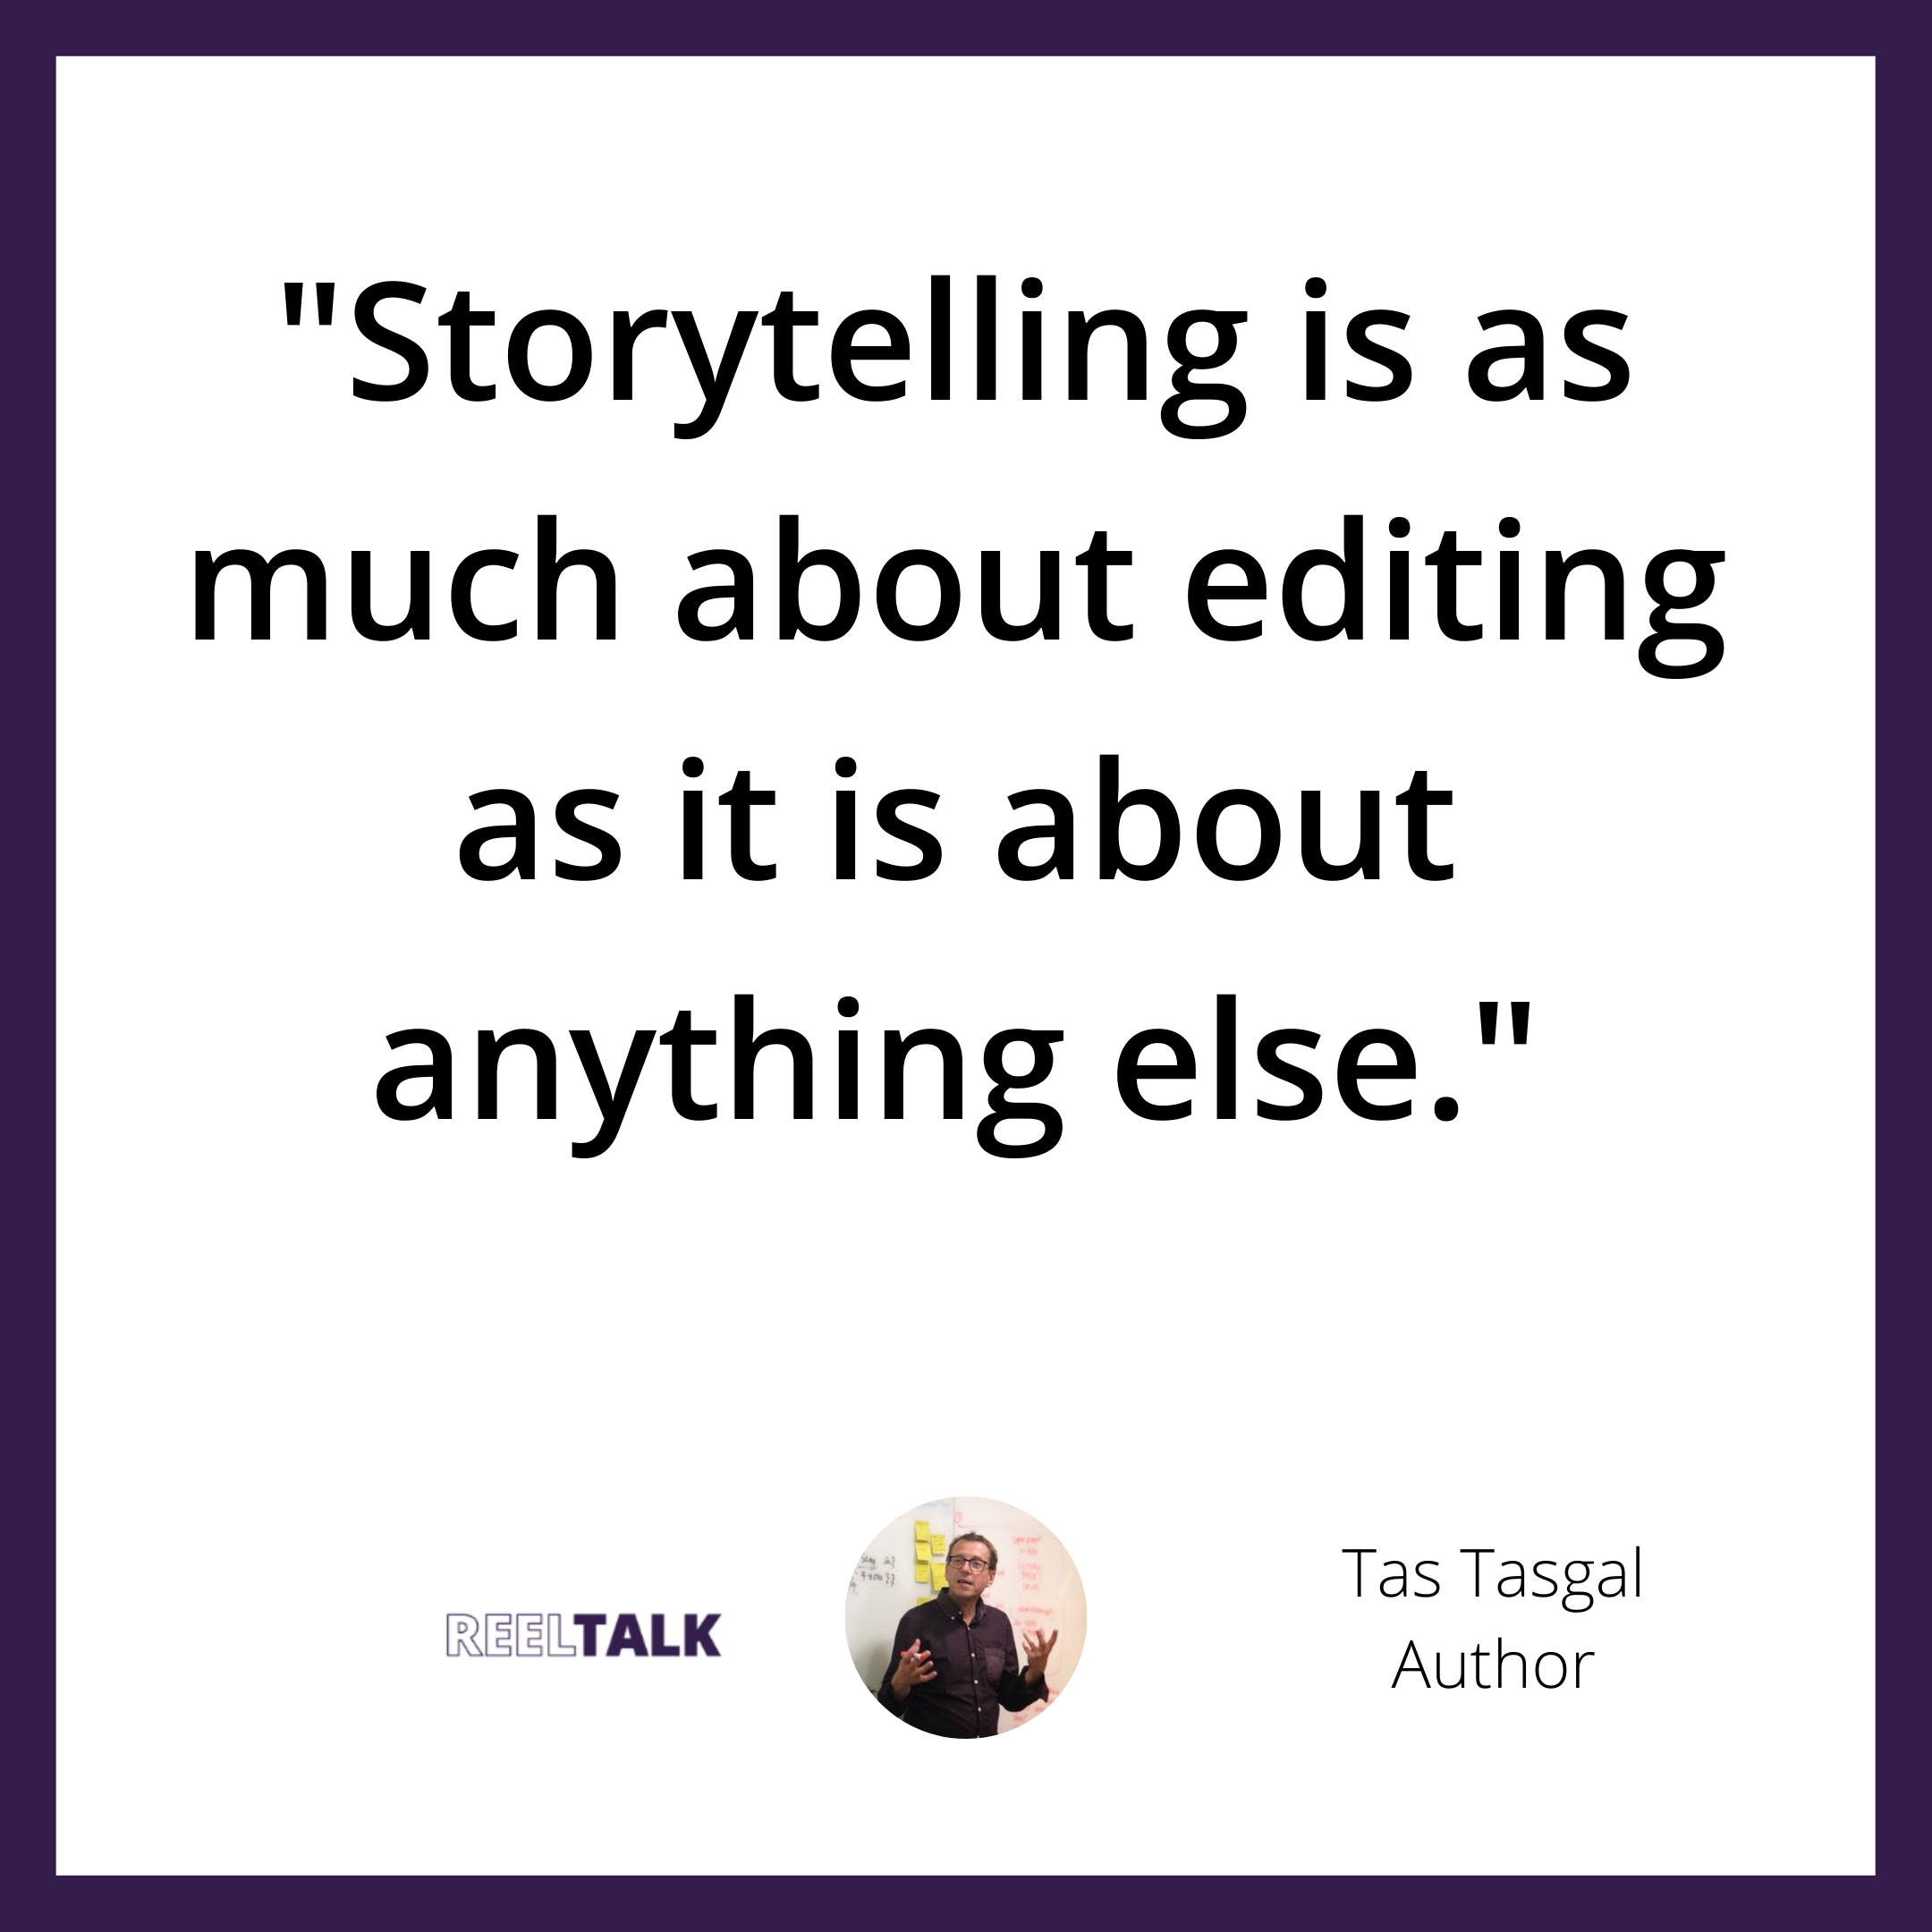 Storytelling is as much about editing as it is about anything else.